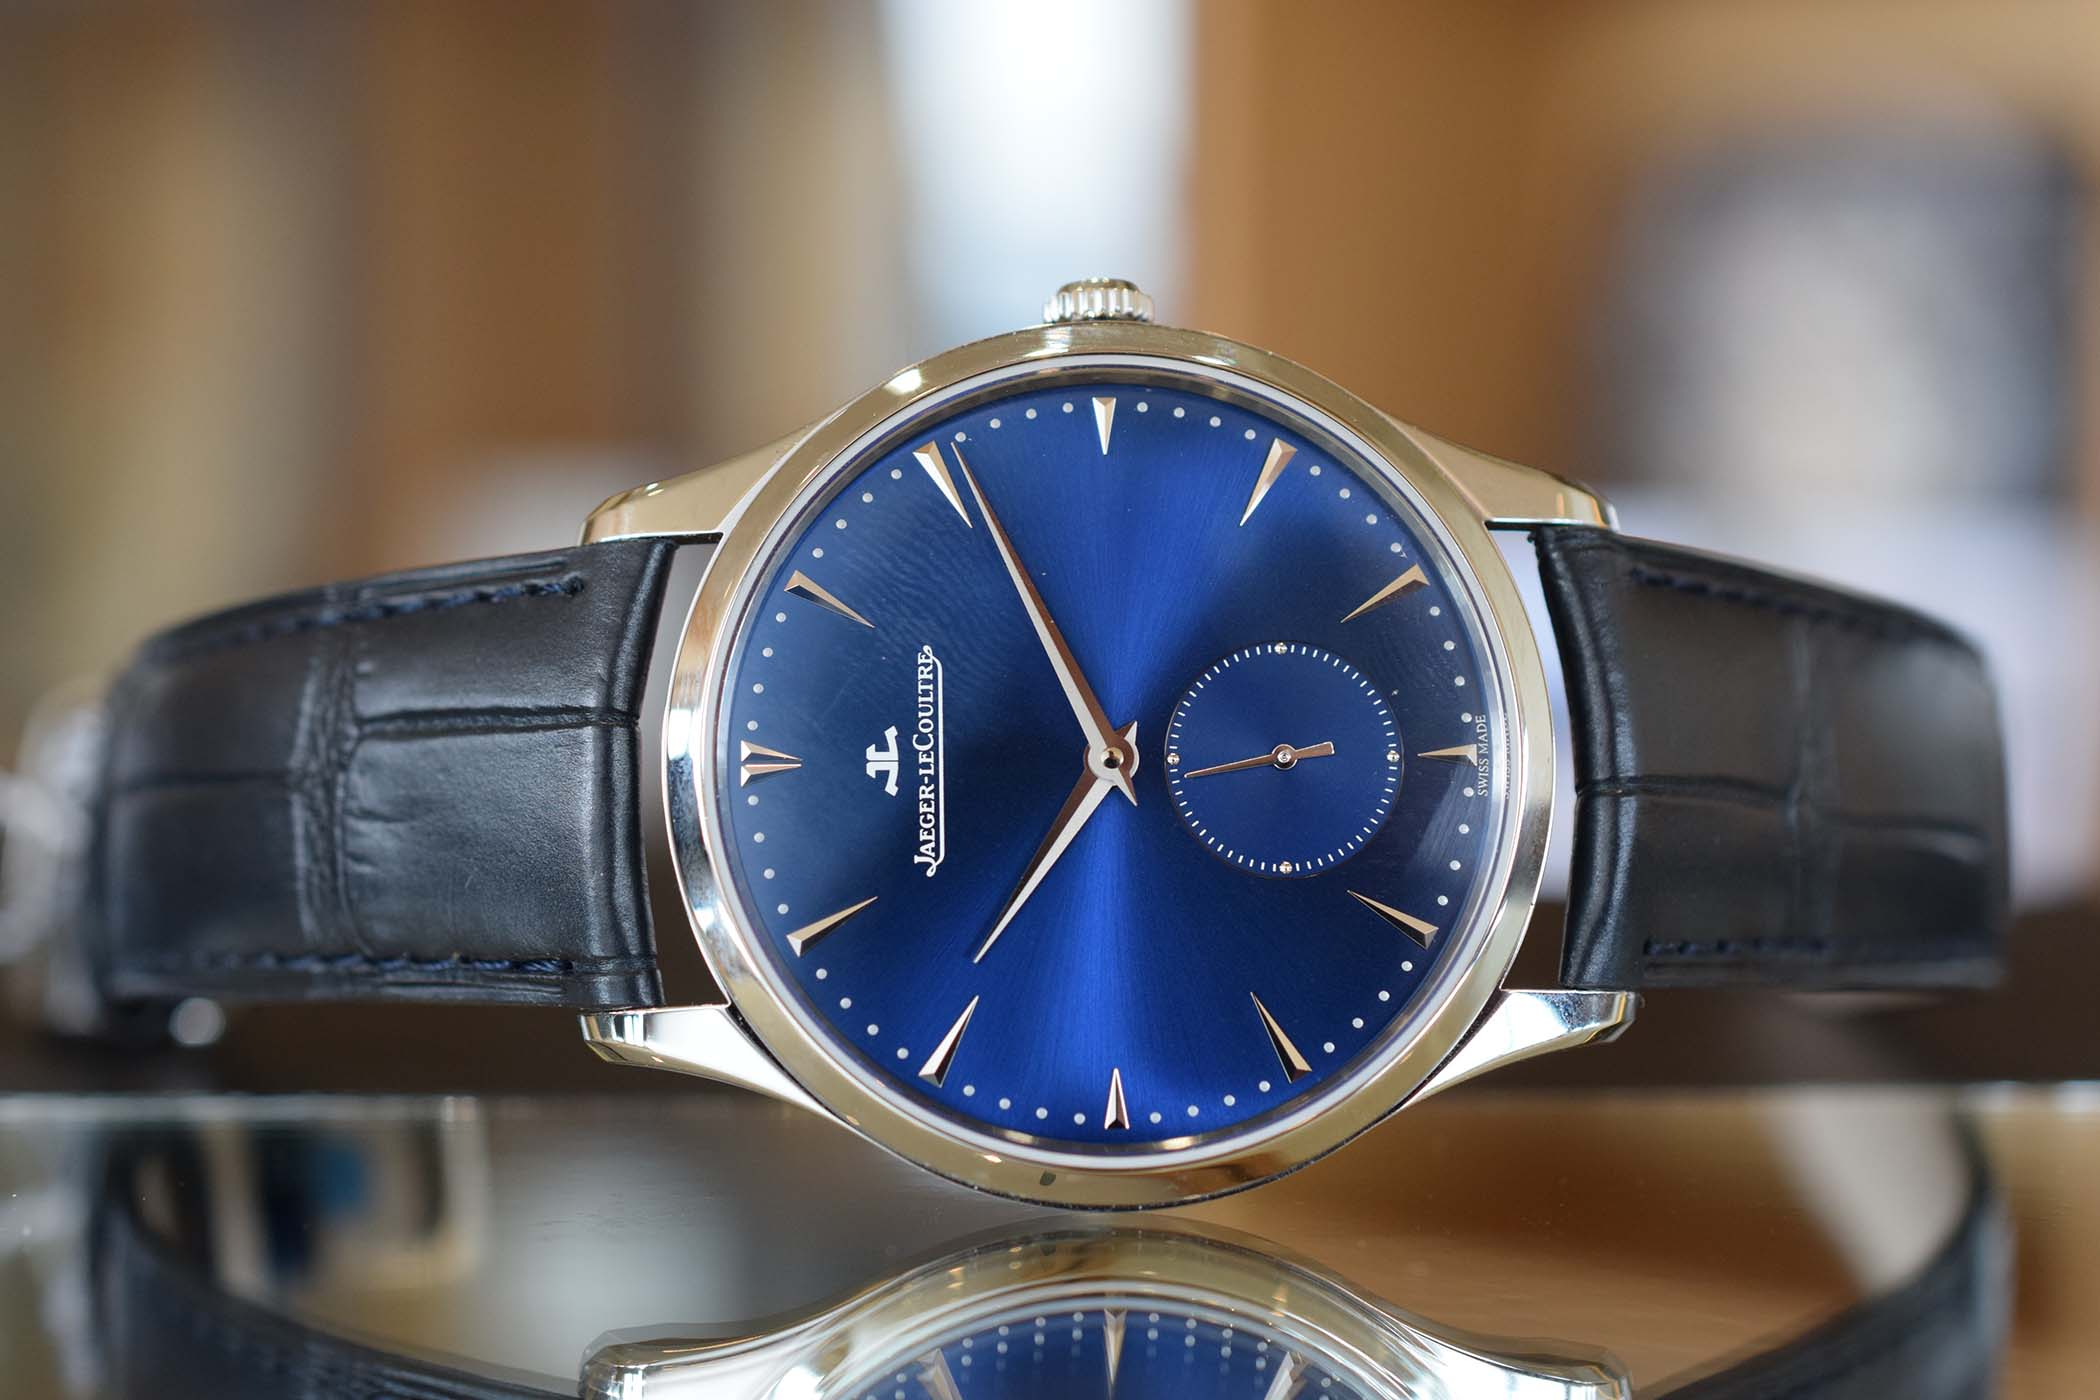 Perpetual Calendar Watches With Moon Phase Seiko Perpetual Calendar Watches Creationwatches Its Sunday A Perfect Day To Choose The Color Of Your